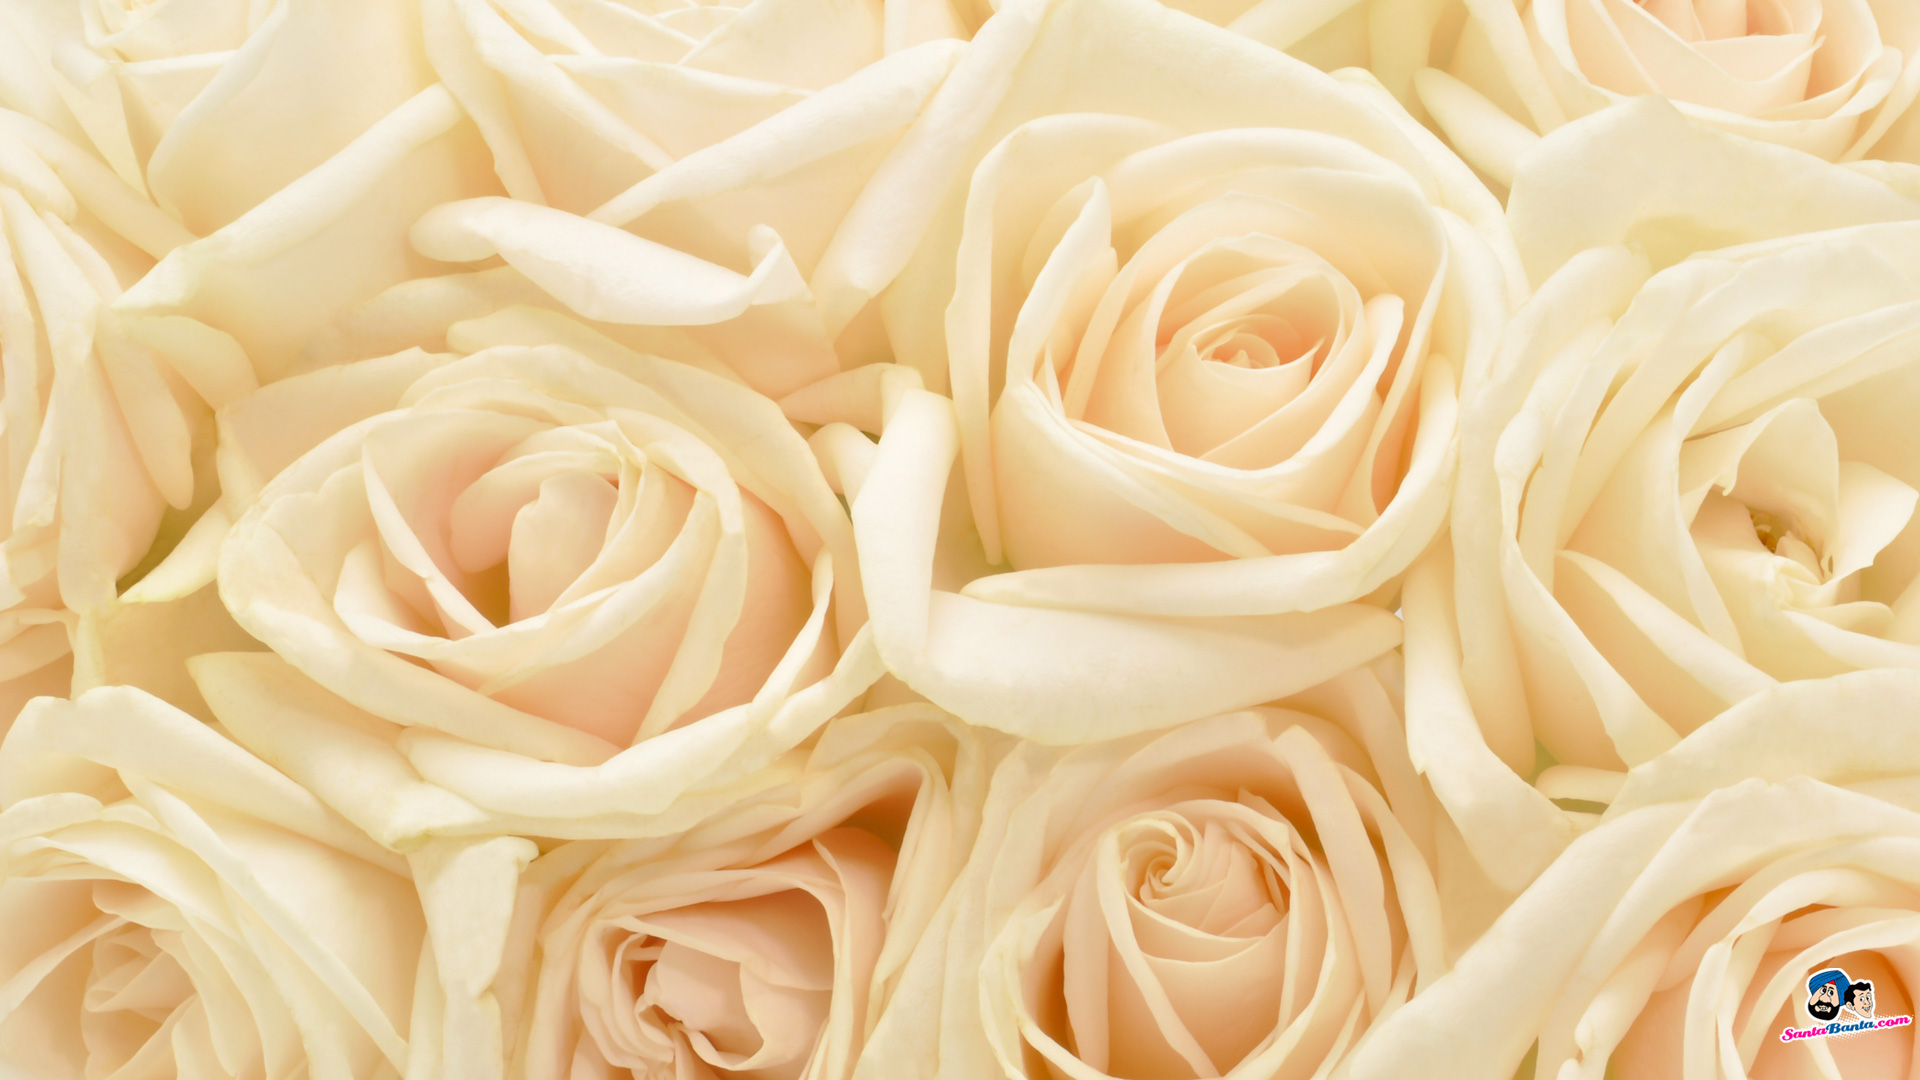 White Rose Wallpapers Group With 73 Items 498585 Hd Wallpaper